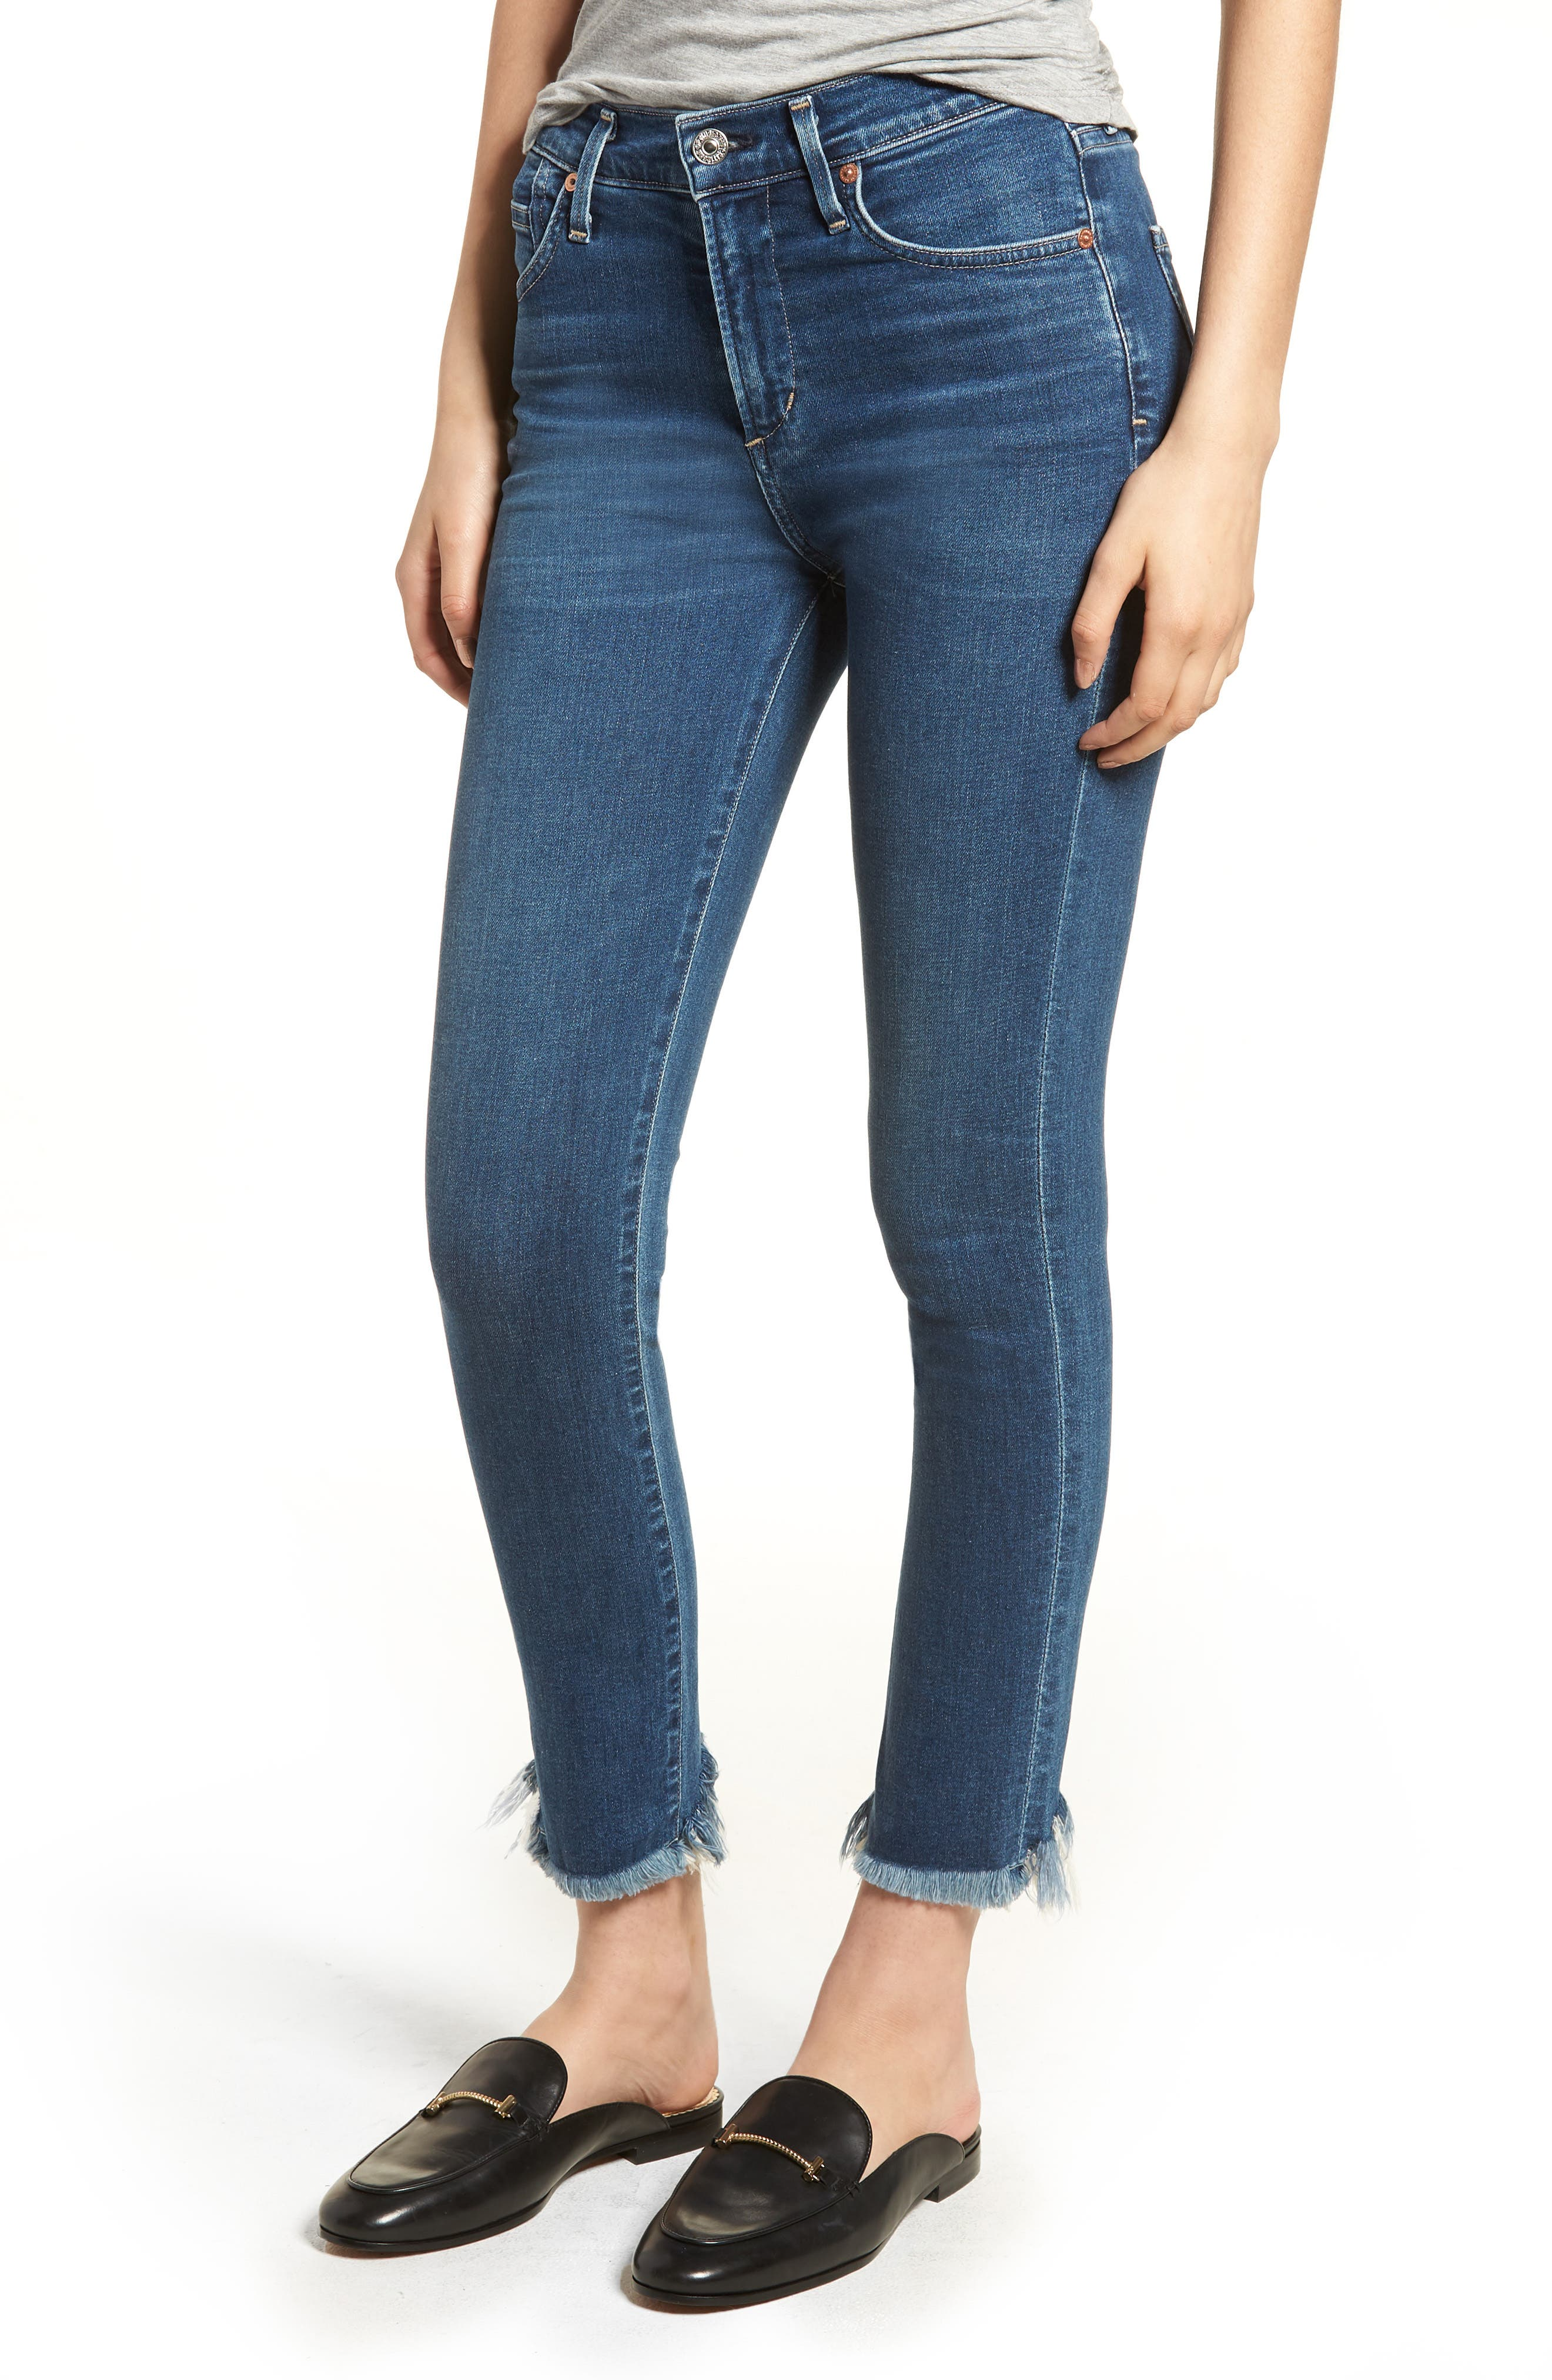 CITIZENS OF HUMANITY Rocket High Waist Crop Skinny Jeans, Main, color, FREQUENCY